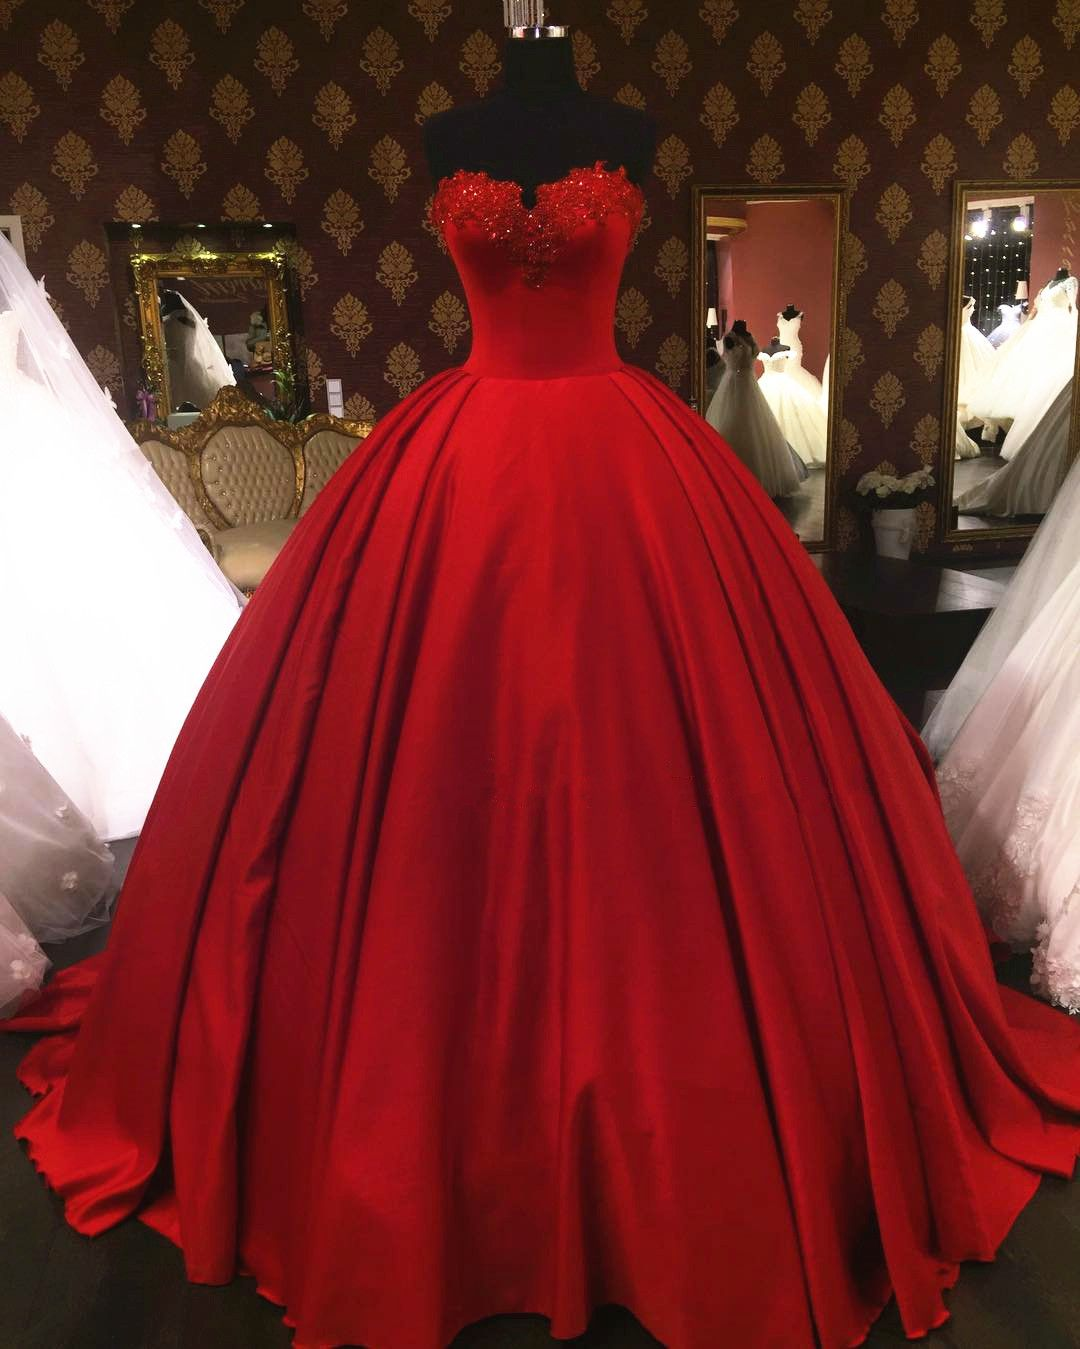 Lovely sweetheart red wedding dresses ball gowns vintage for Red wedding dresses with sleeves